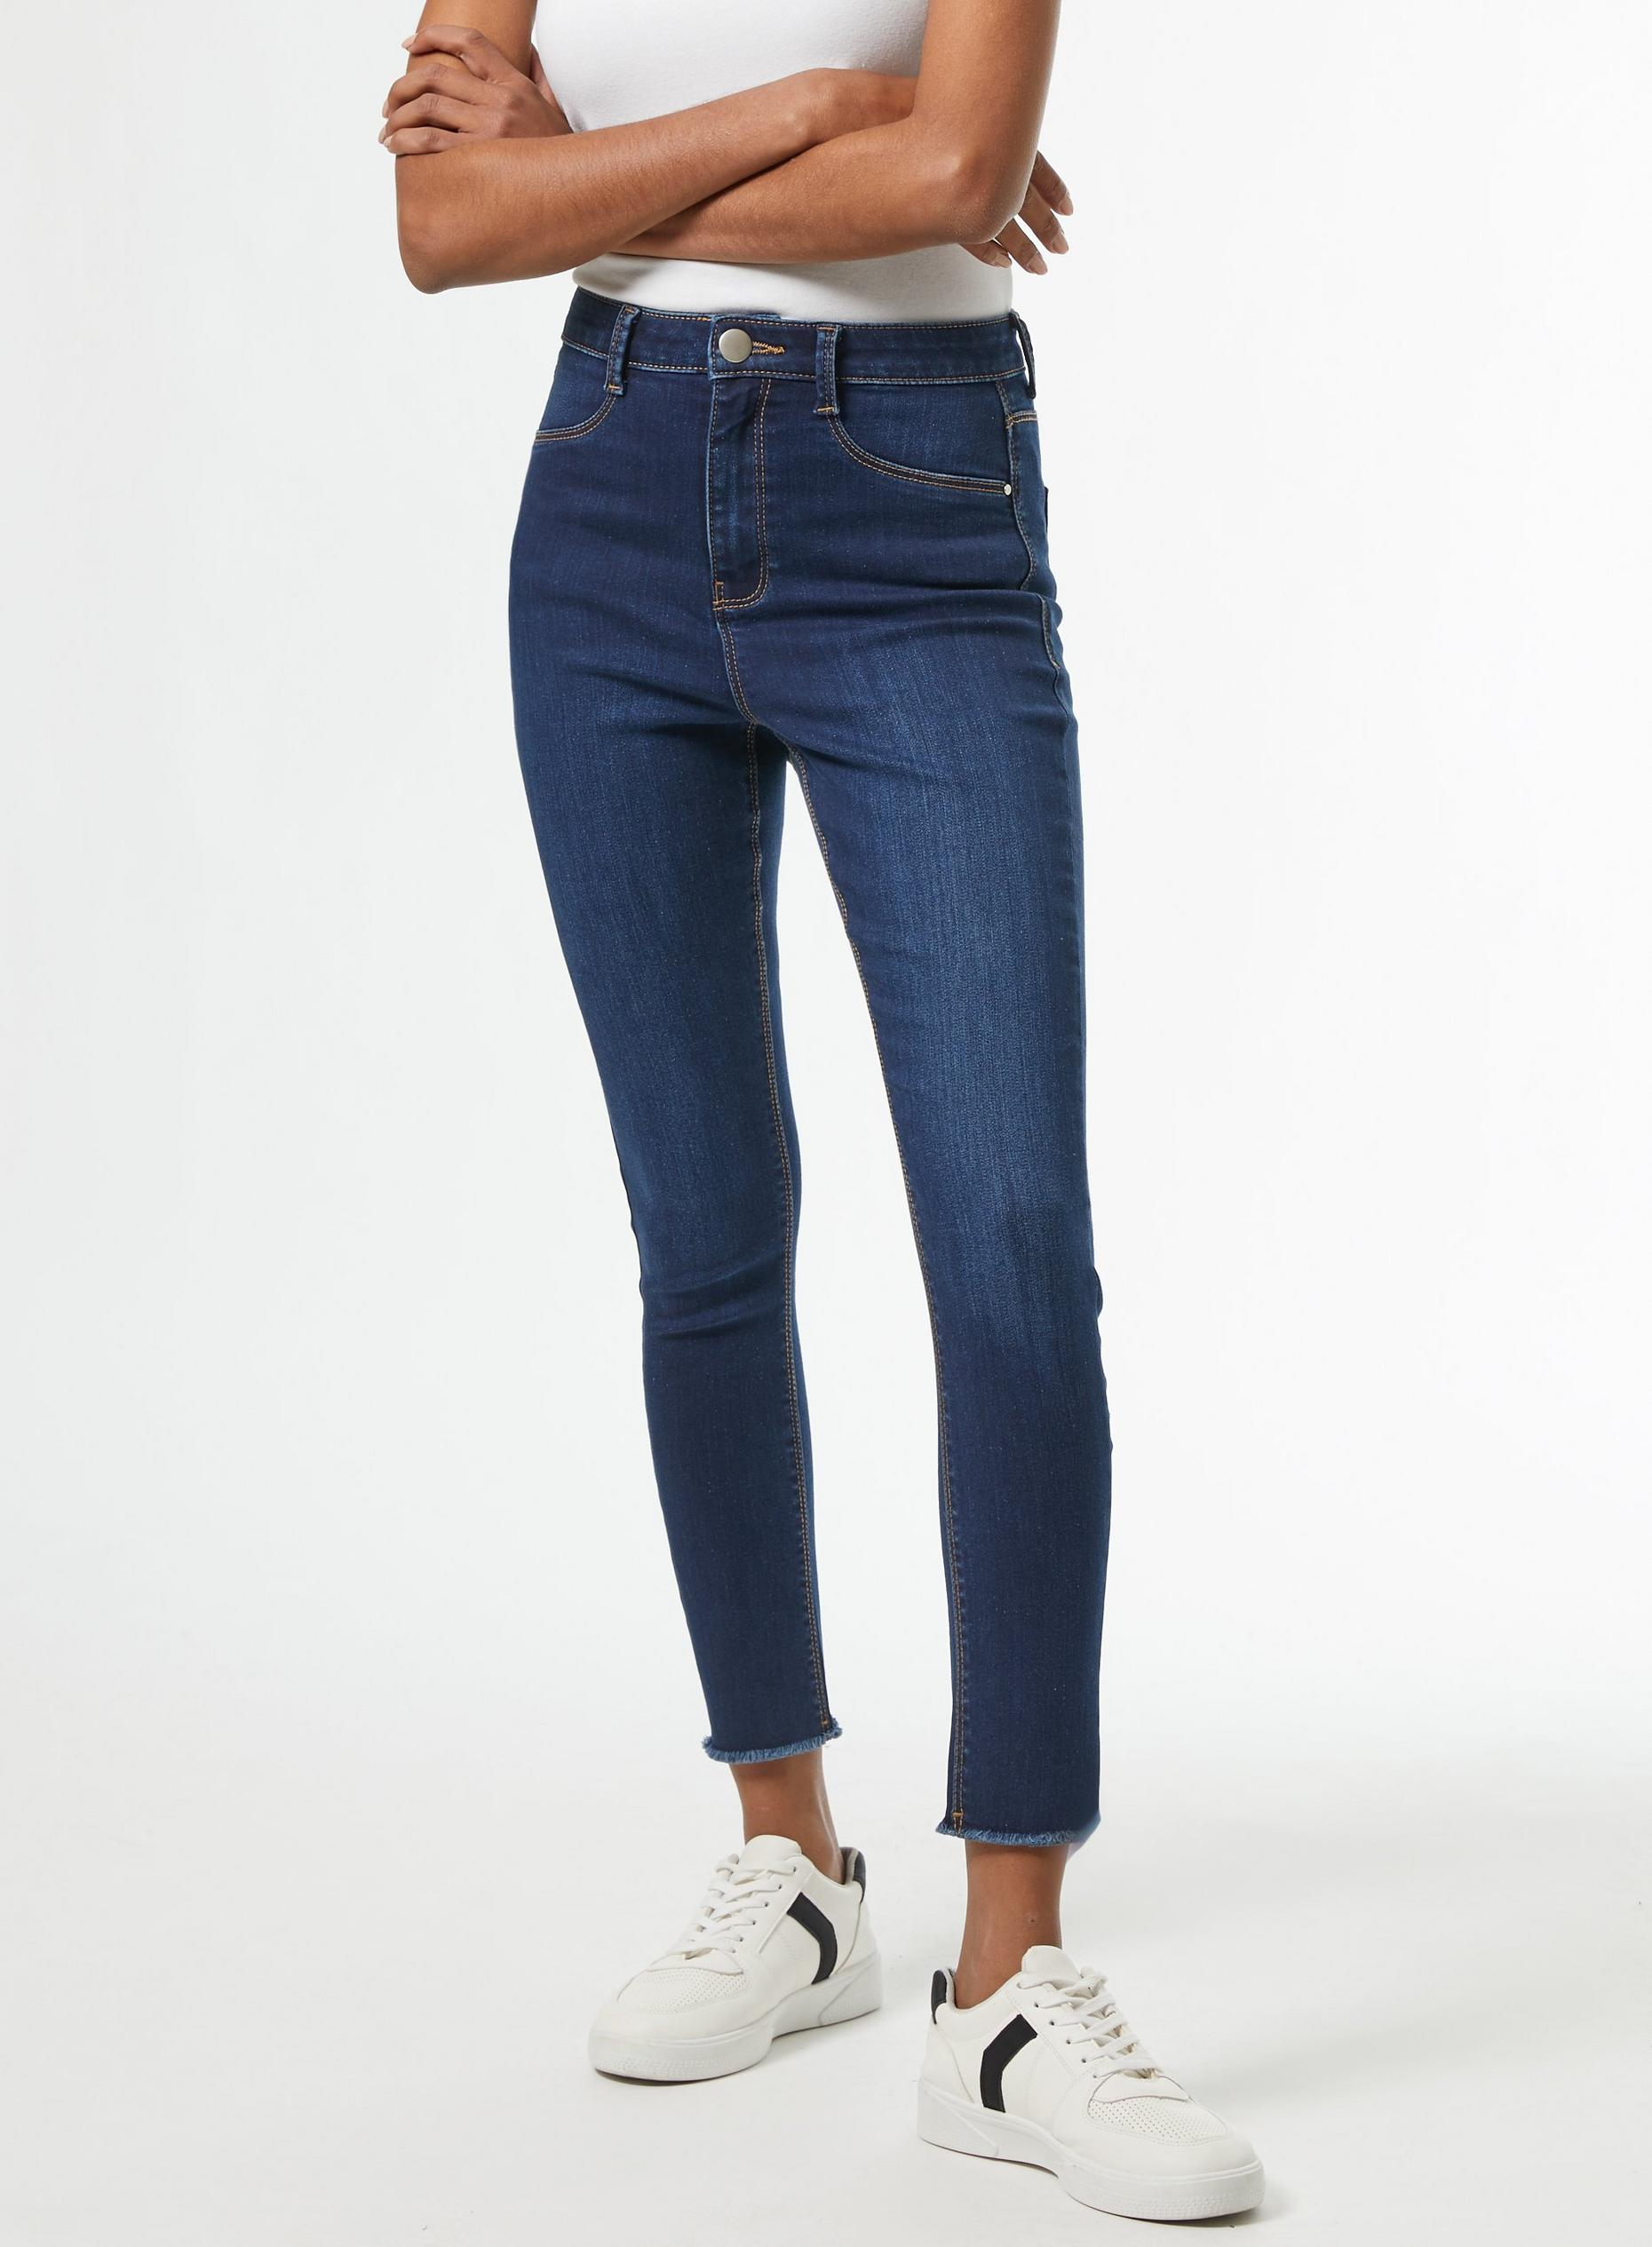 Petite Blue Raw Hem Frankie Denim Jeans